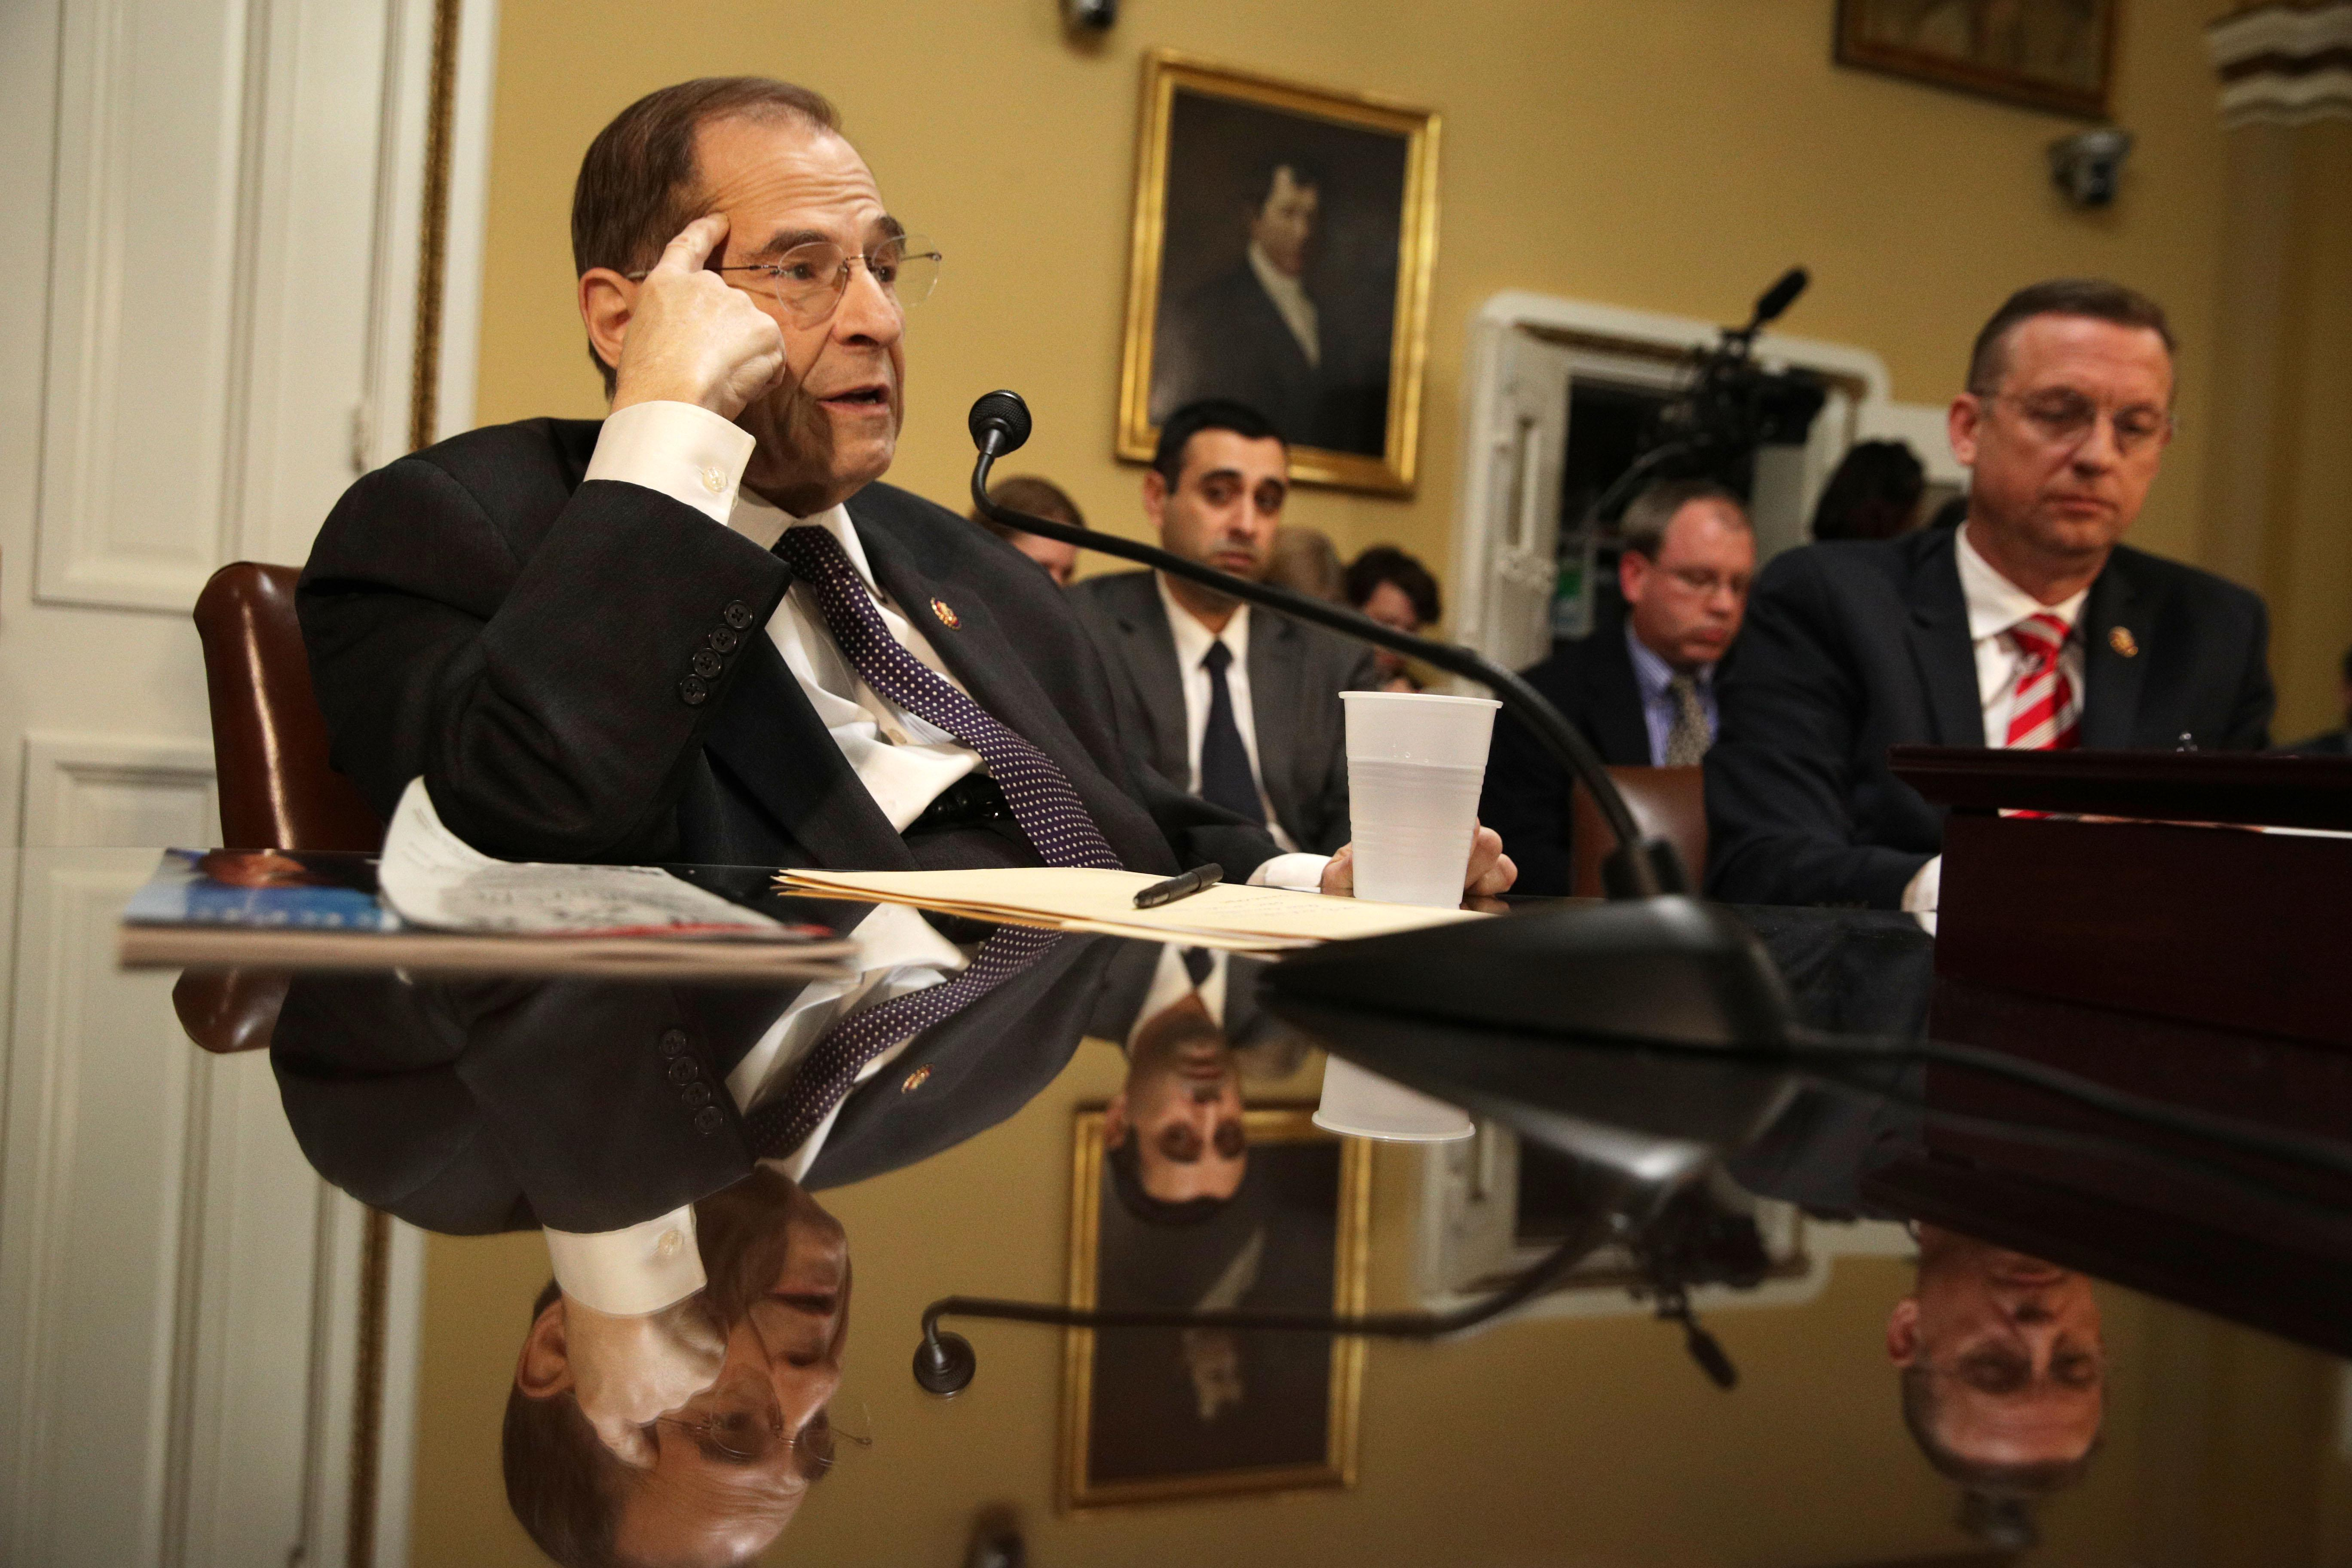 Rep. Jerrold Nadler speaks during a House Rules Committee meeting at the U.S. Capitol on February 25, 2019 in Washington, D.C.